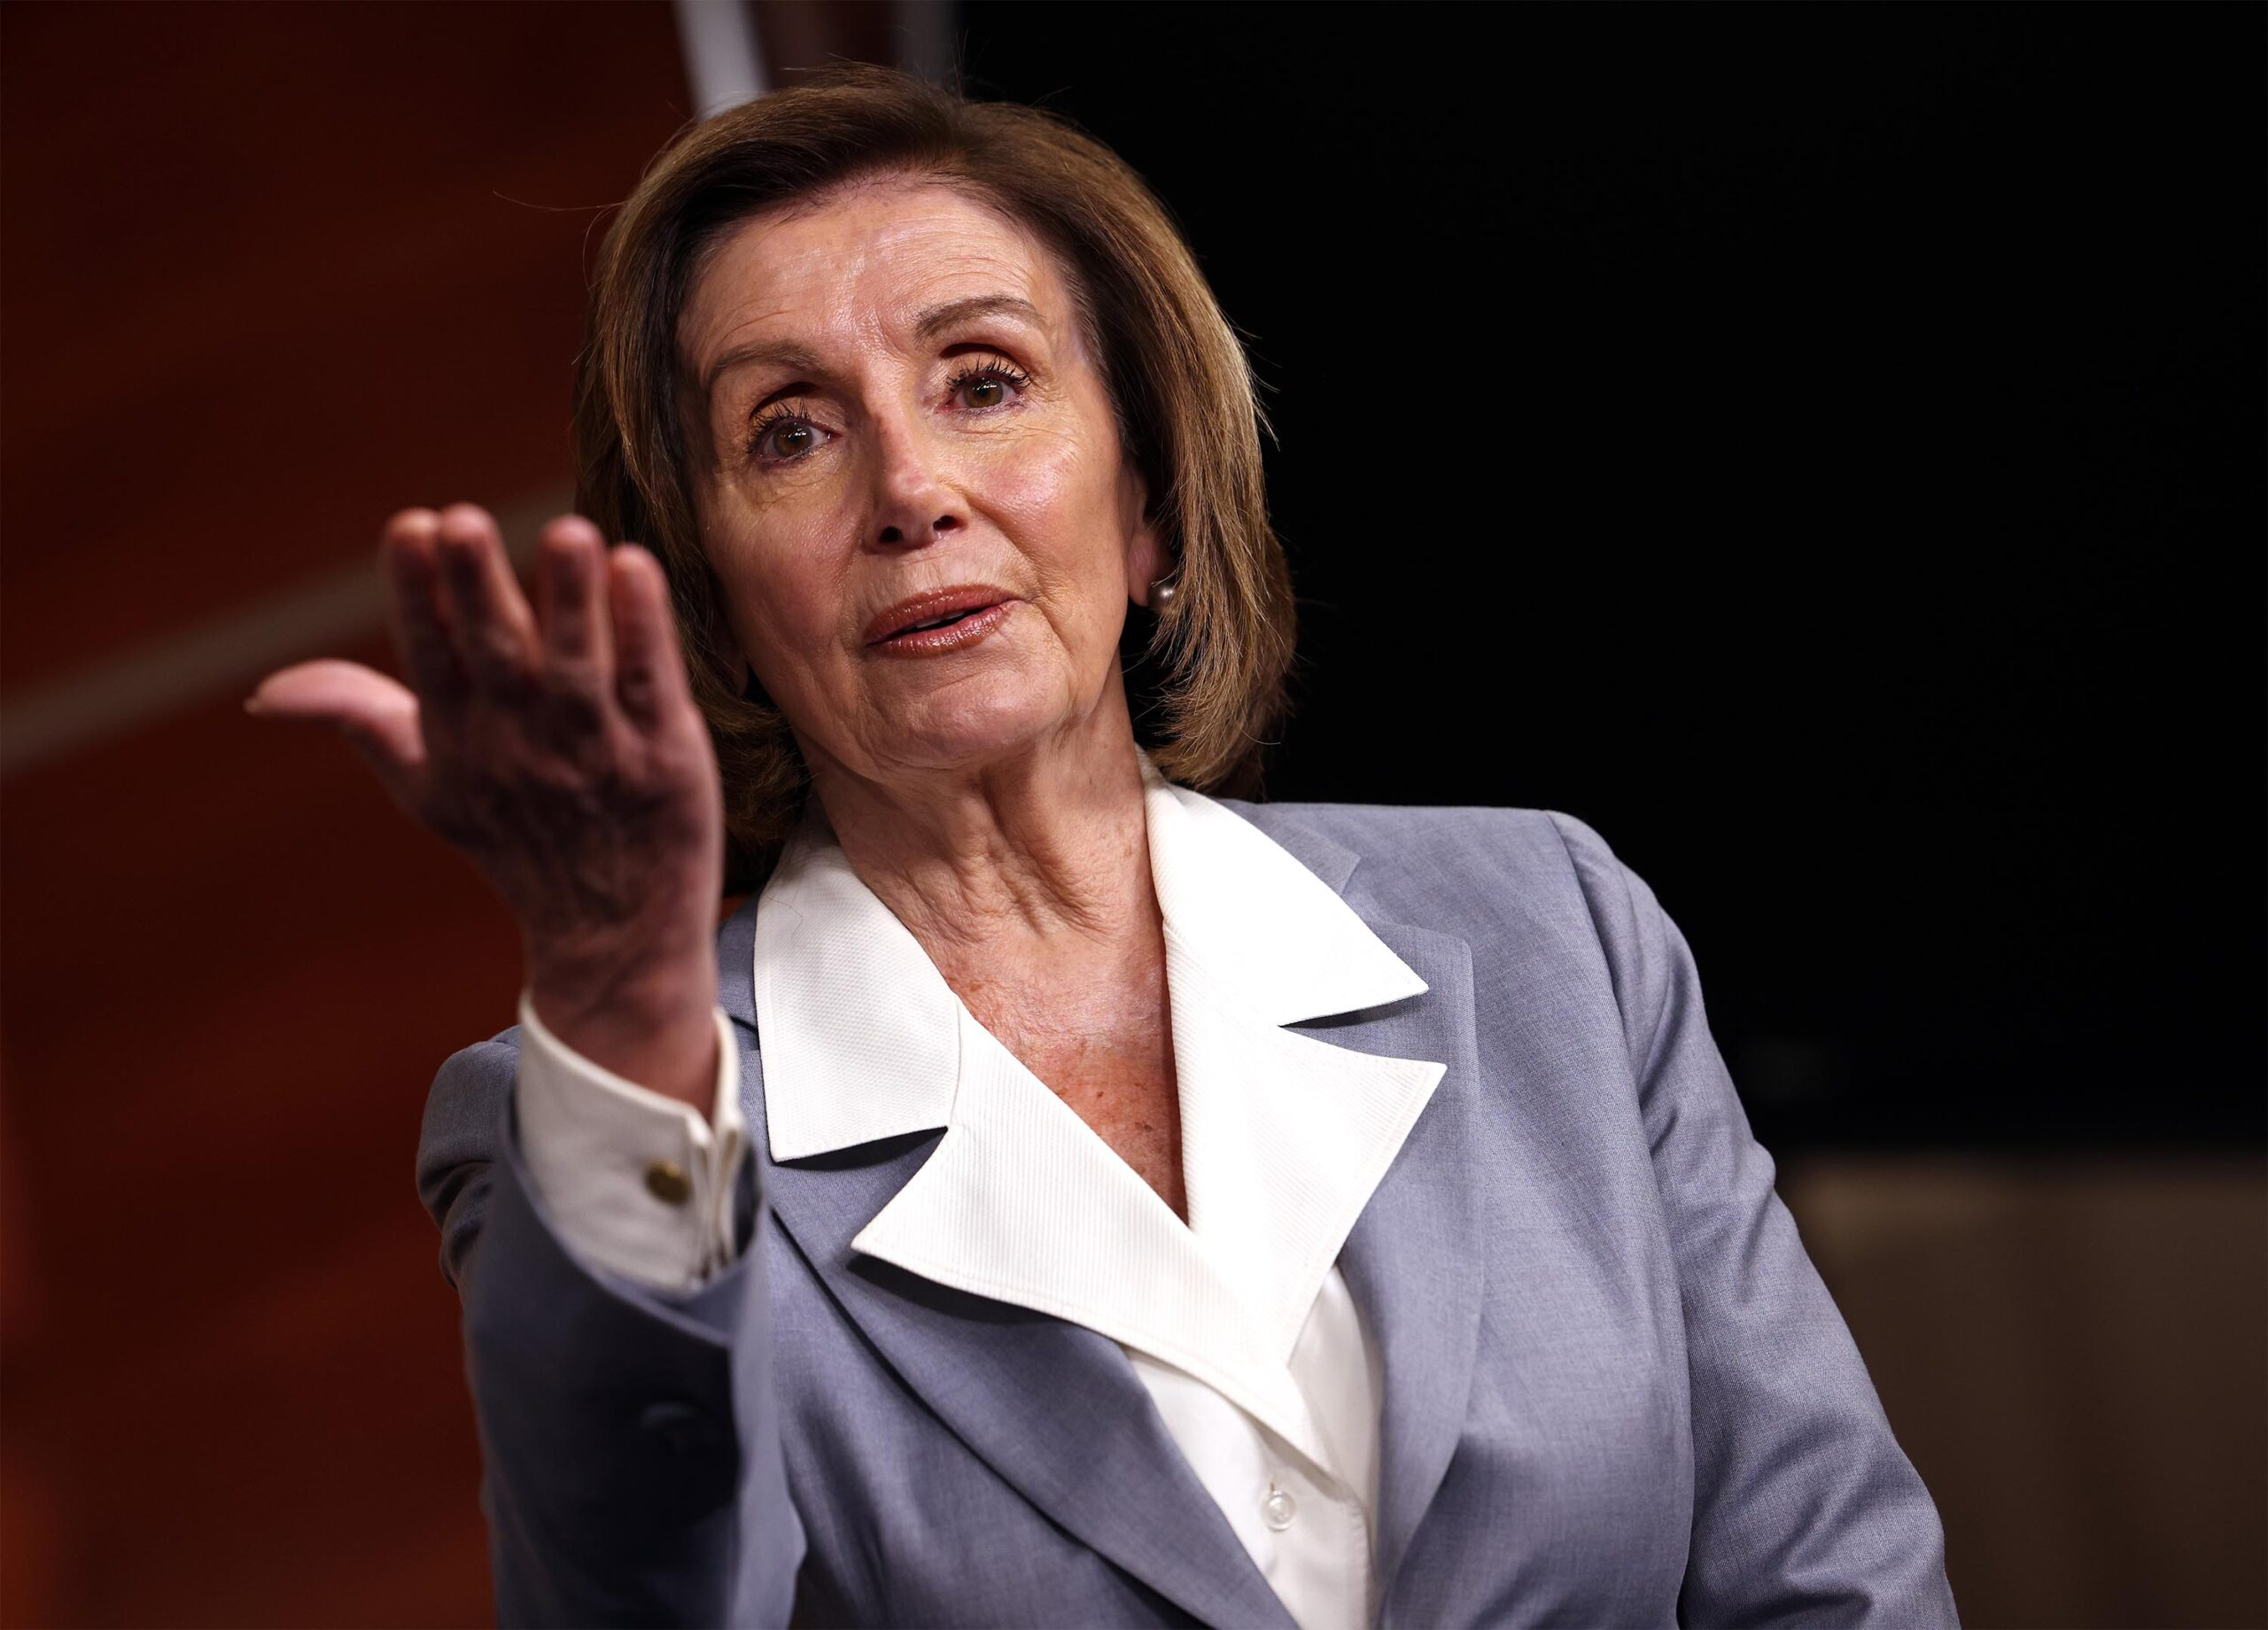 Key things to know about the select committee Pelosi wants to form to investigate the Capitol riot 1